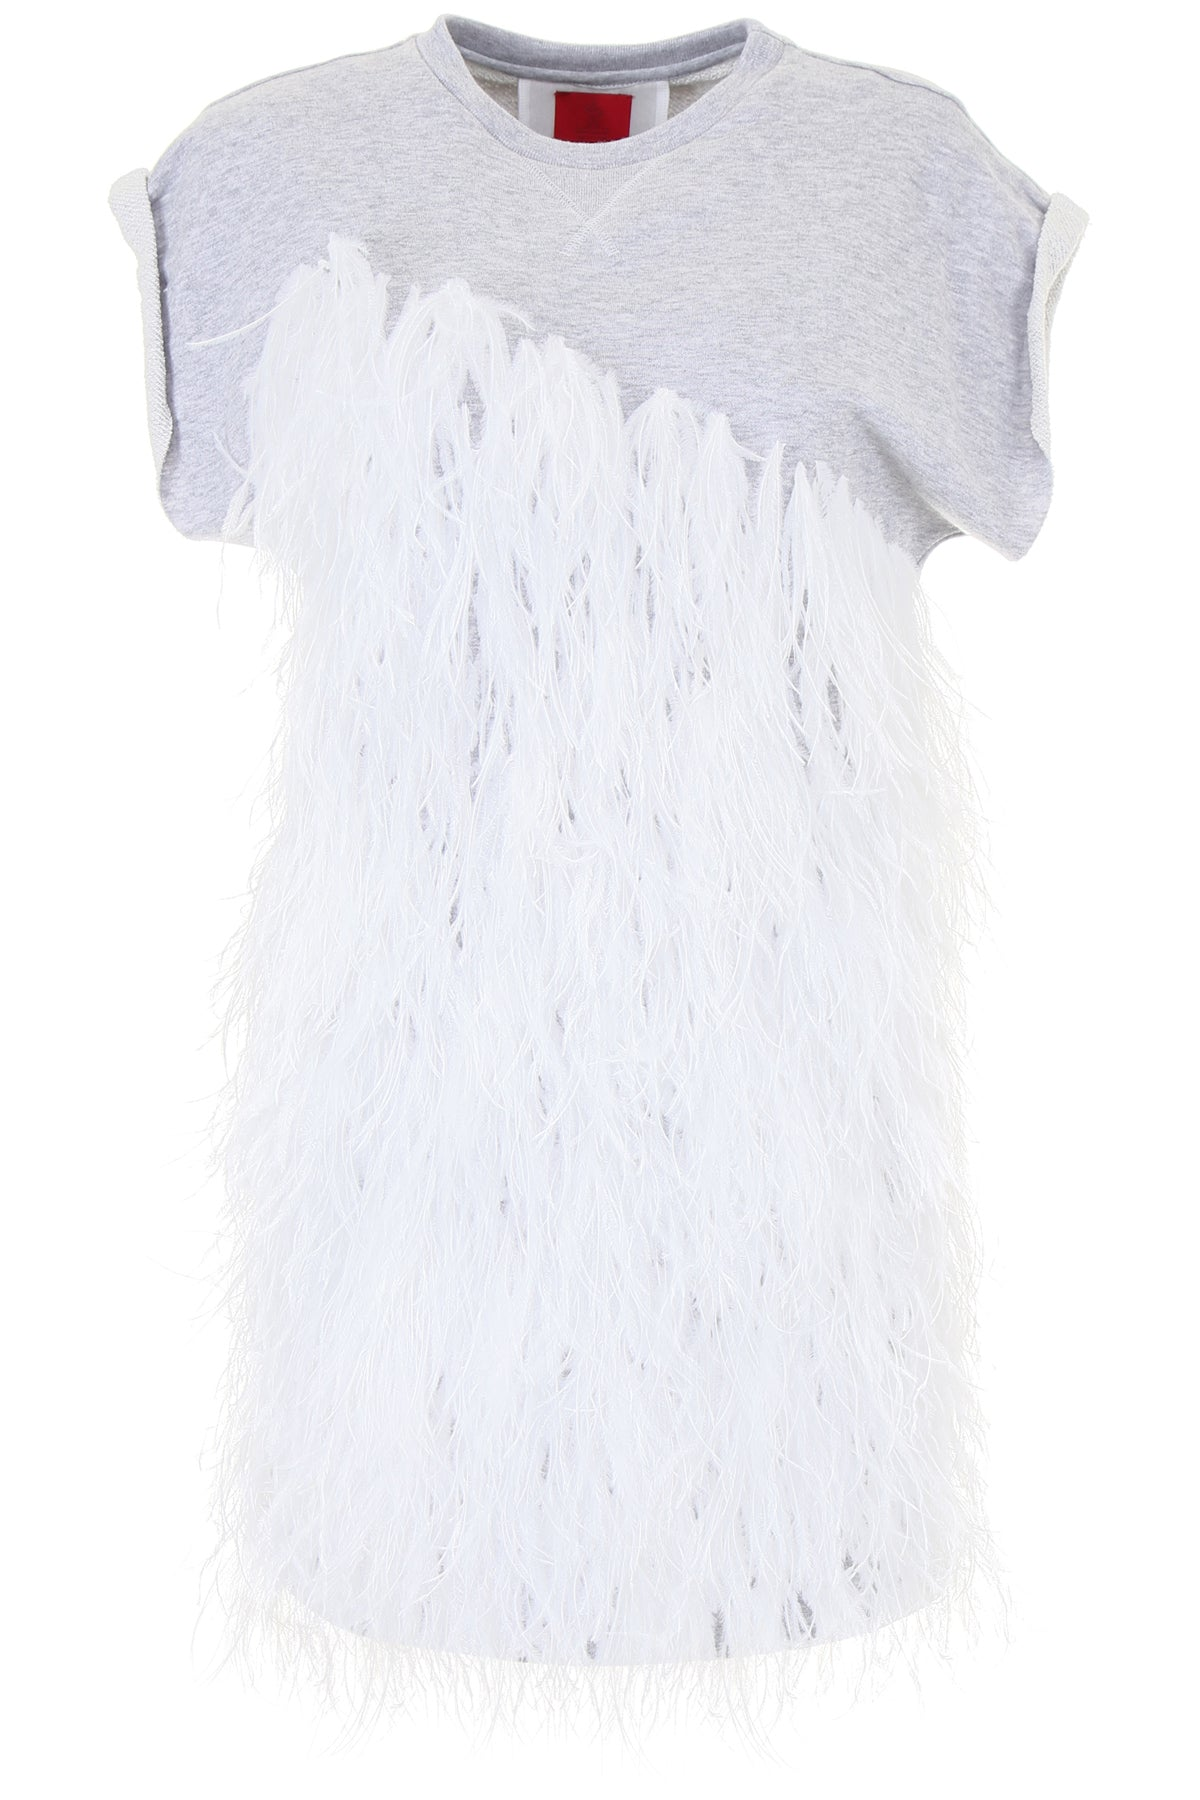 MONCLER GAMME ROUGE FEATHER SWEATSHIRT DRESS